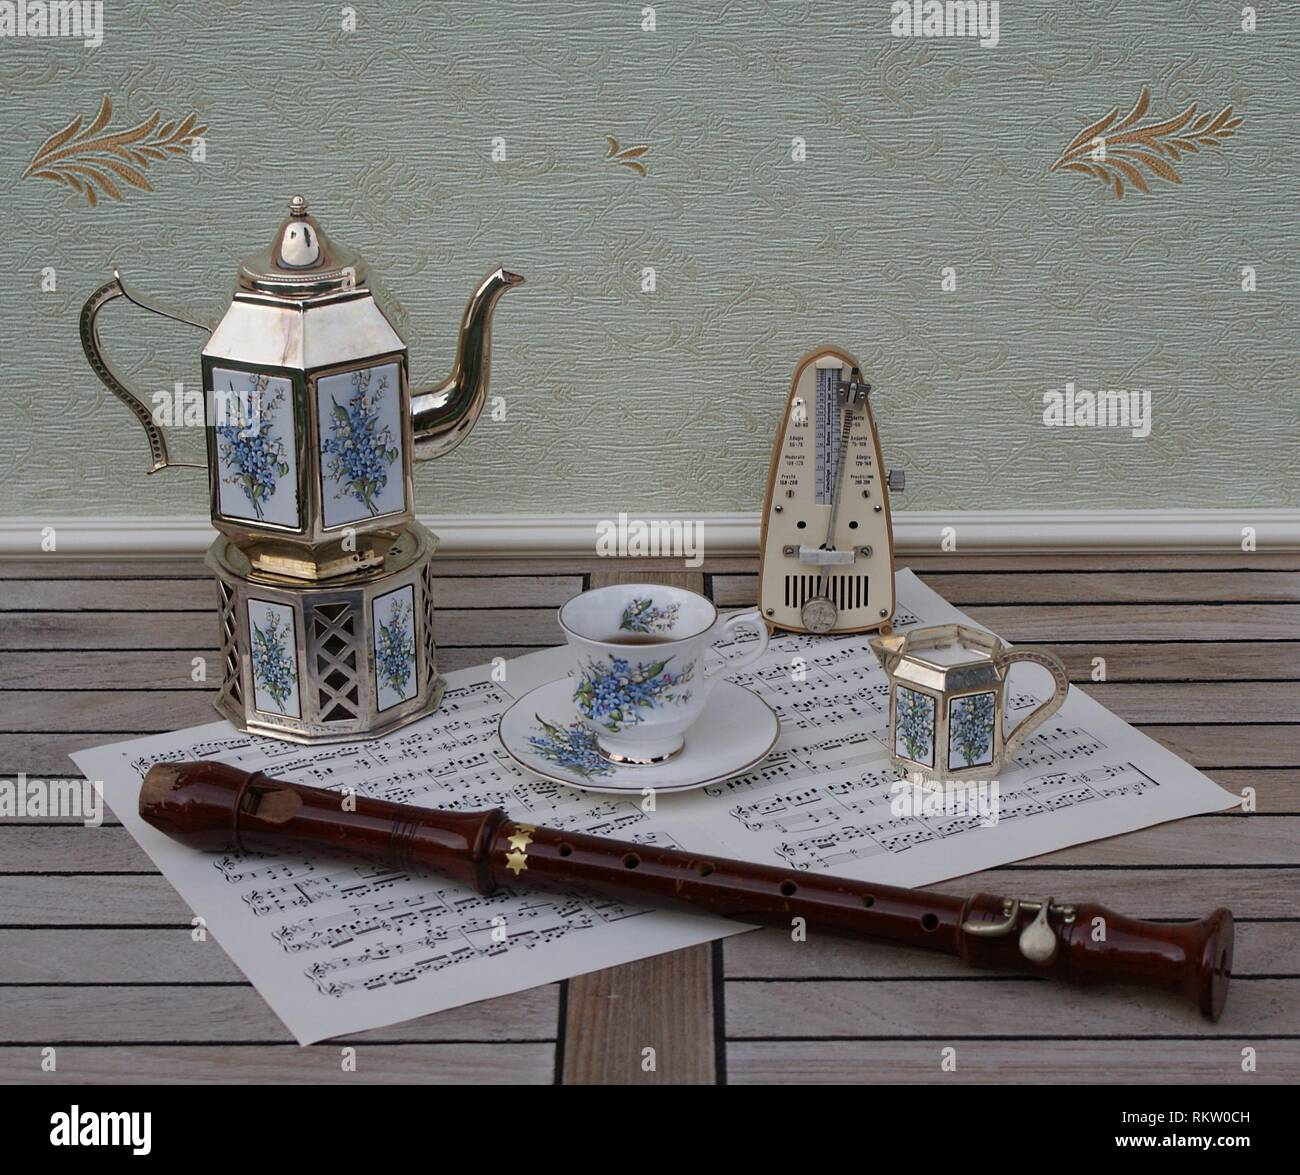 English teacup, saucer, silver-plated teapot on a silver stove, cream jug with floral decor, metronome for music and a block flute on a sheet of music - Stock Image